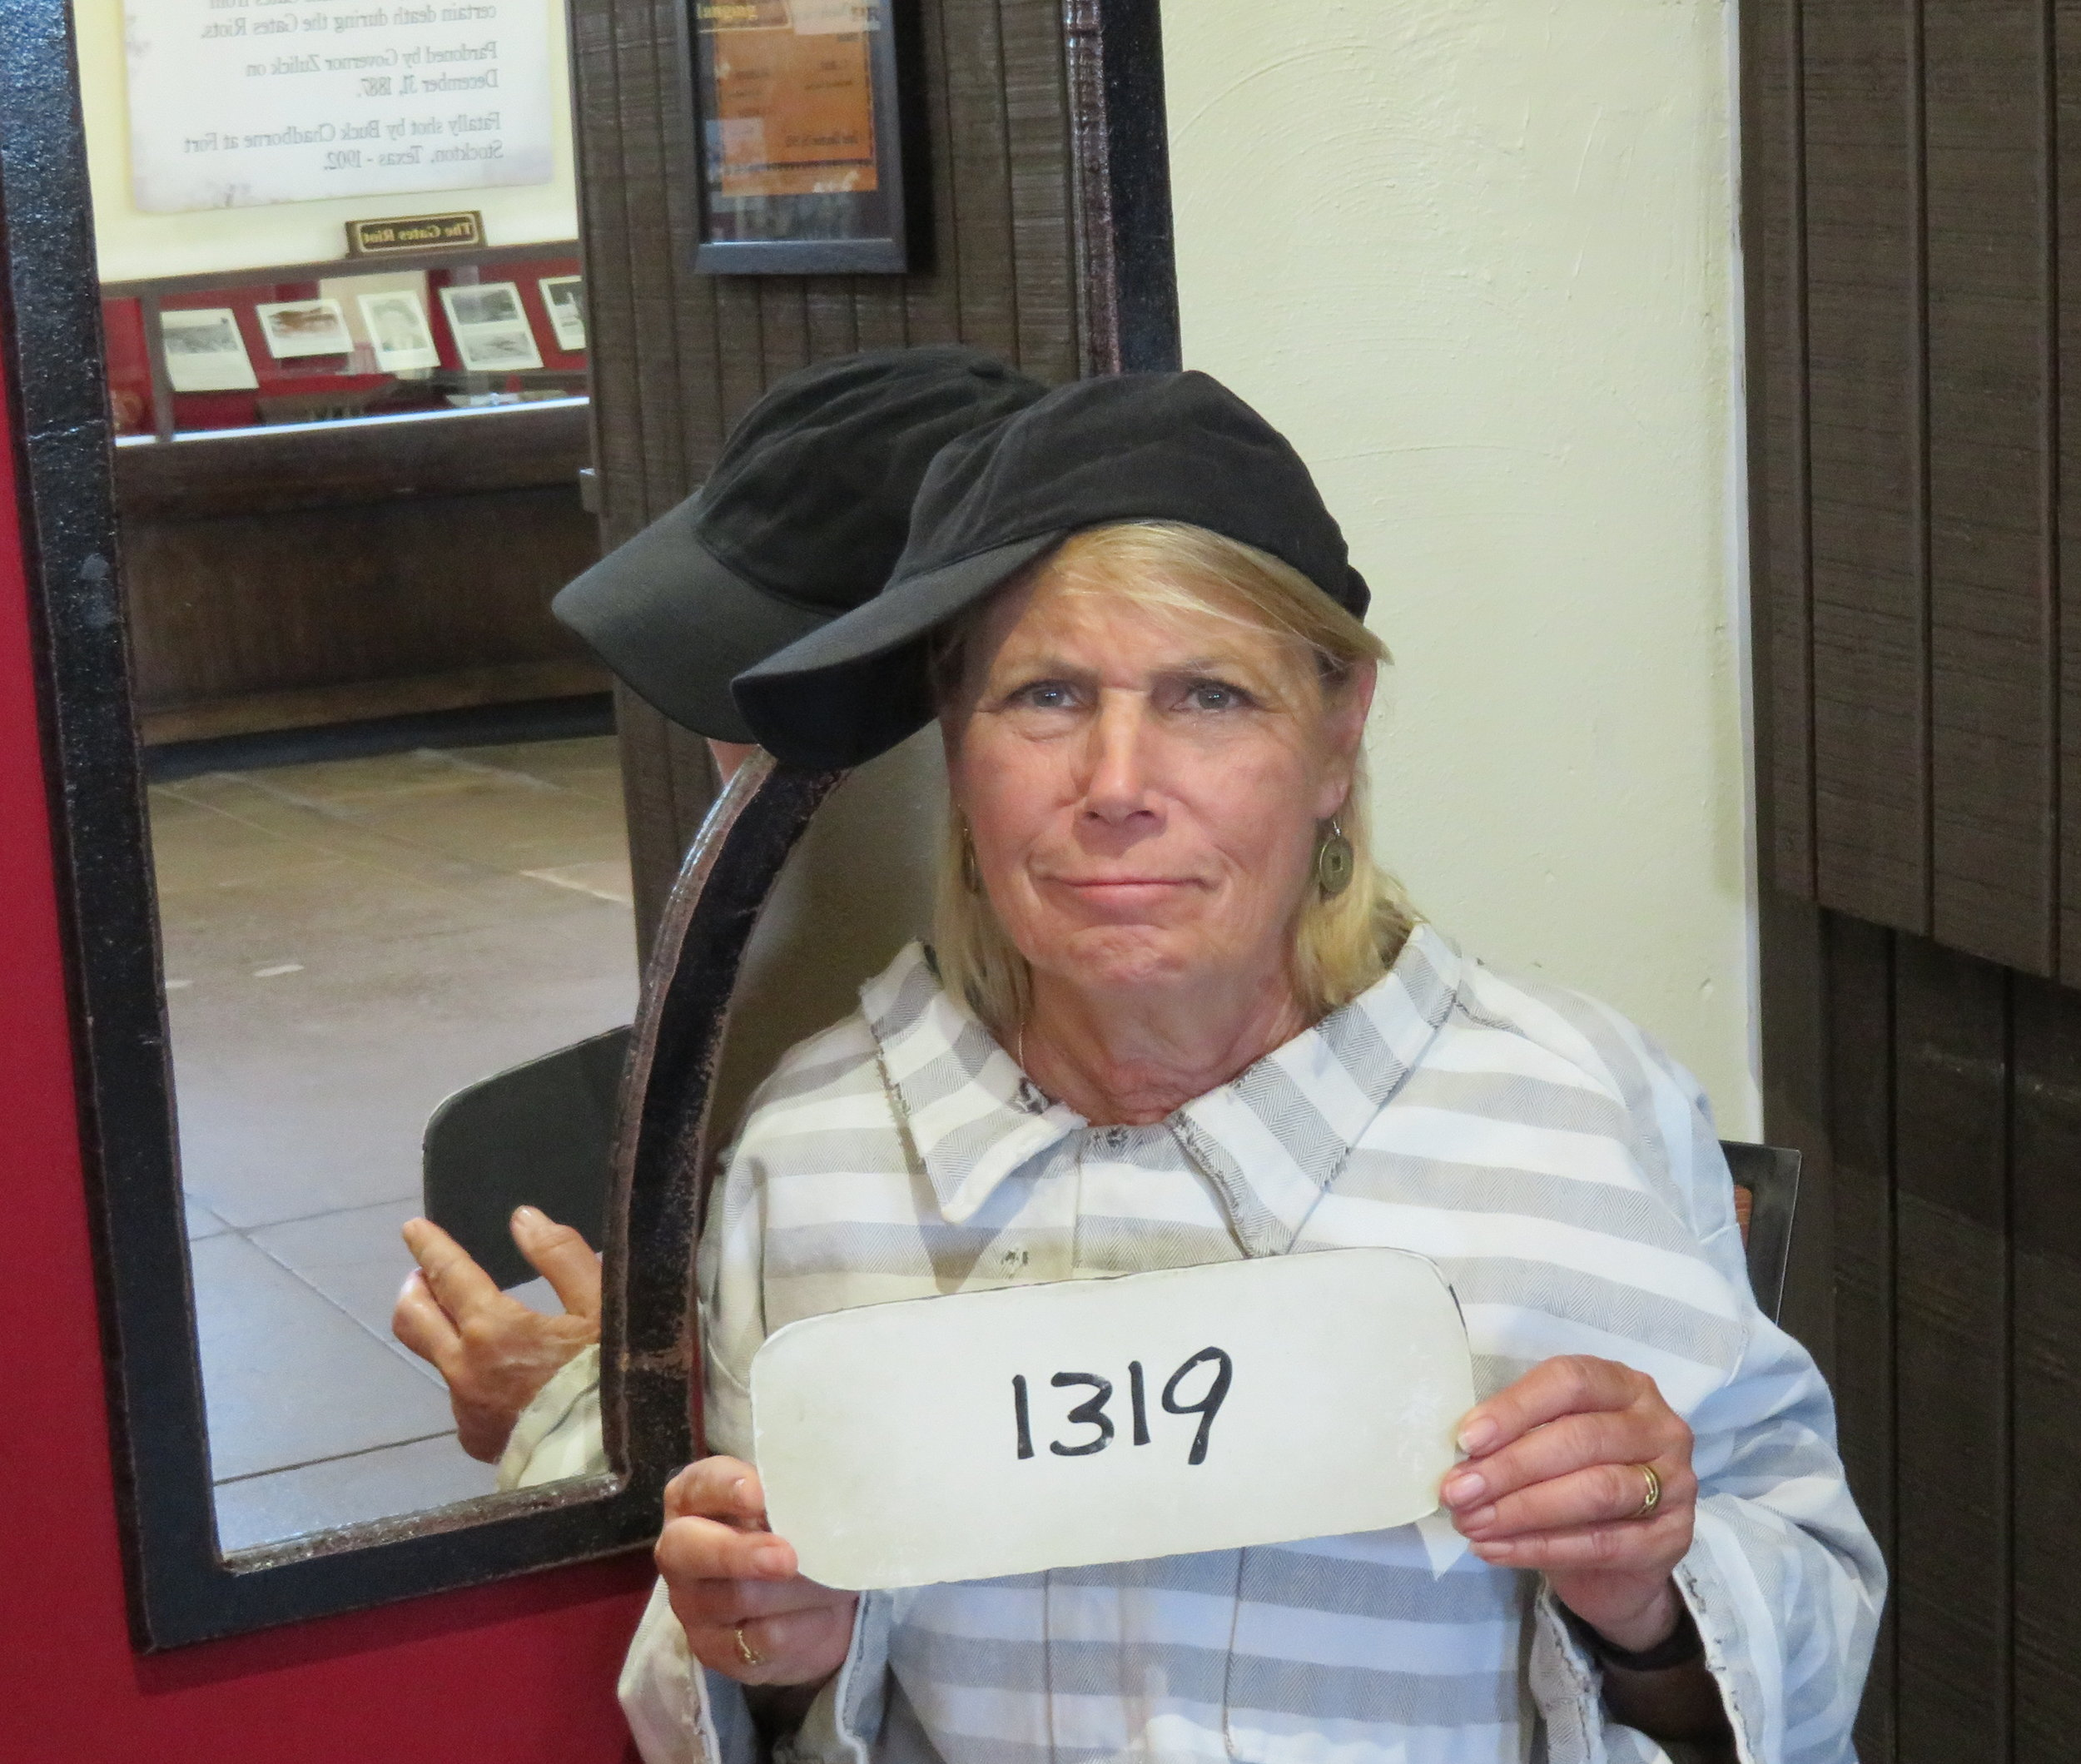 I'm innocent!!! Just another hardened criminal. Wonder what she's in for?